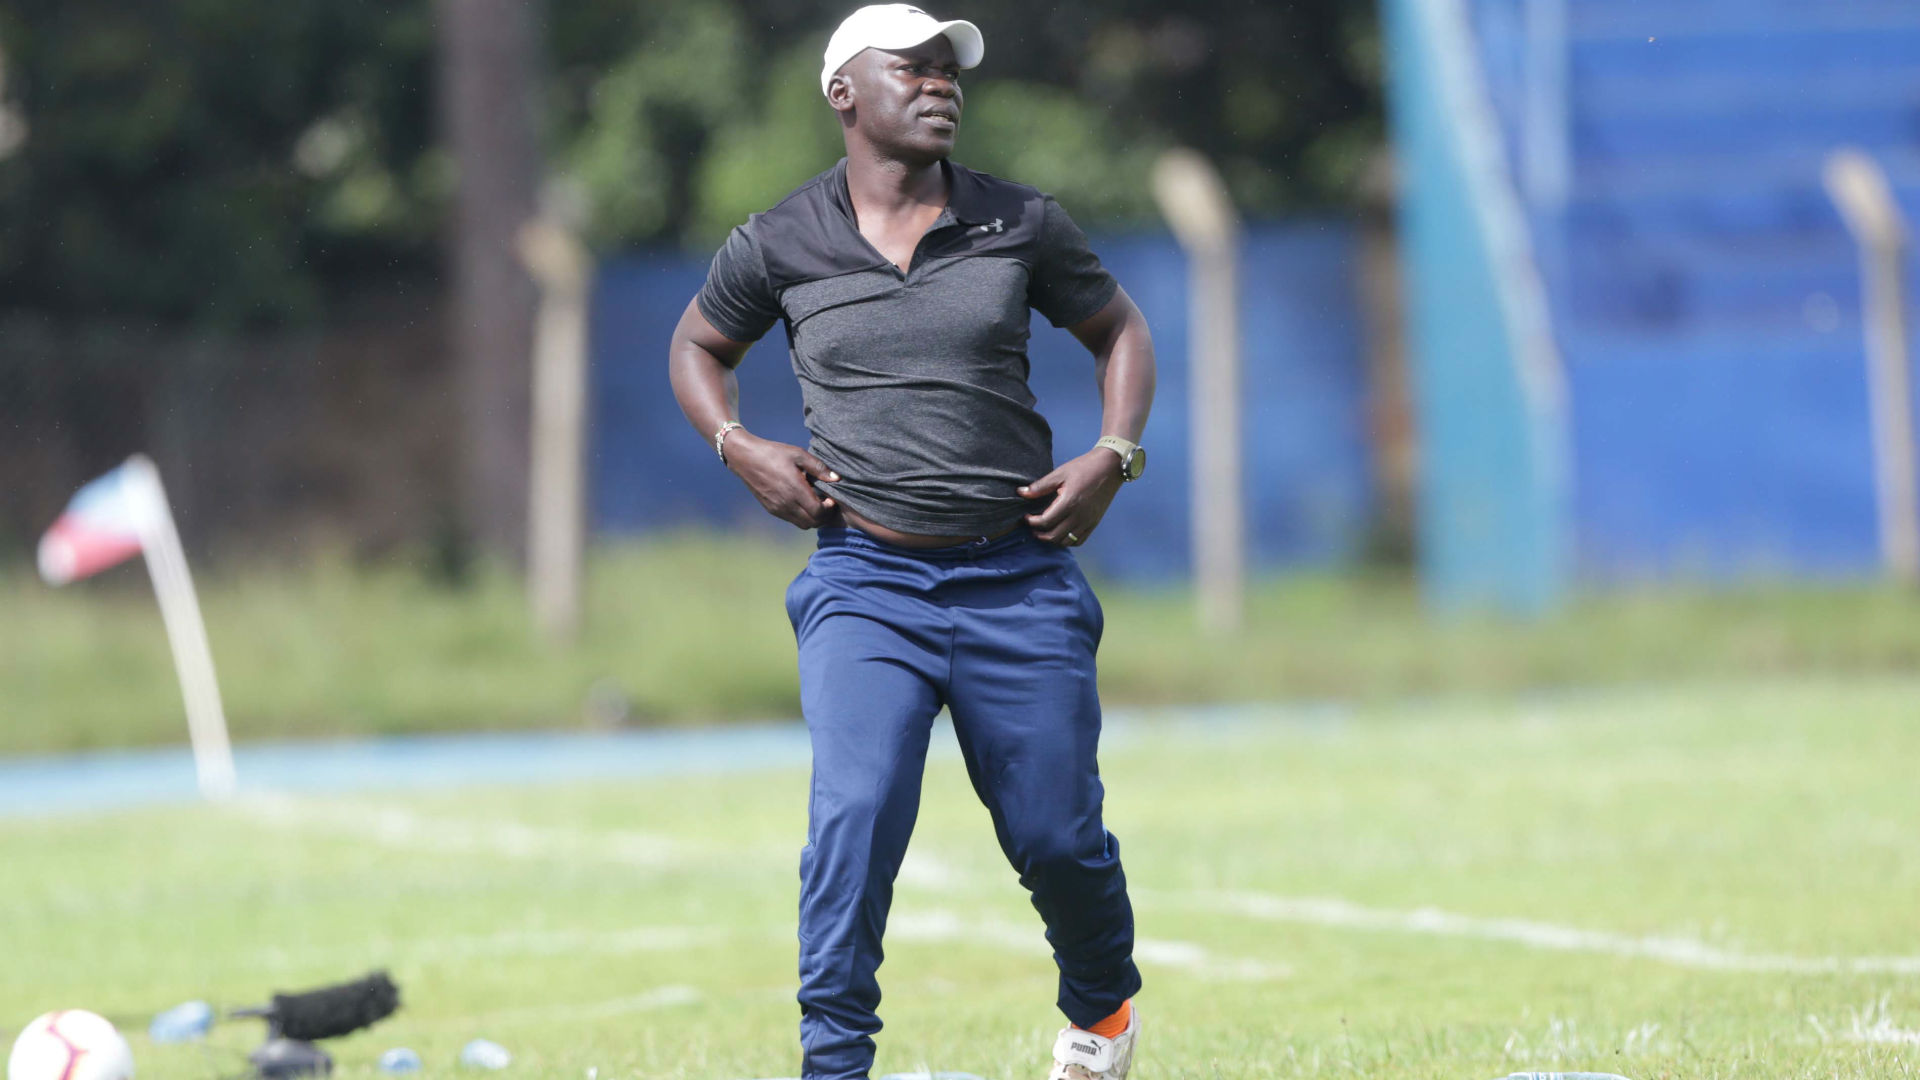 Sofapaka are ready for Gor Mahia after rectifying weaknesses – Baraza